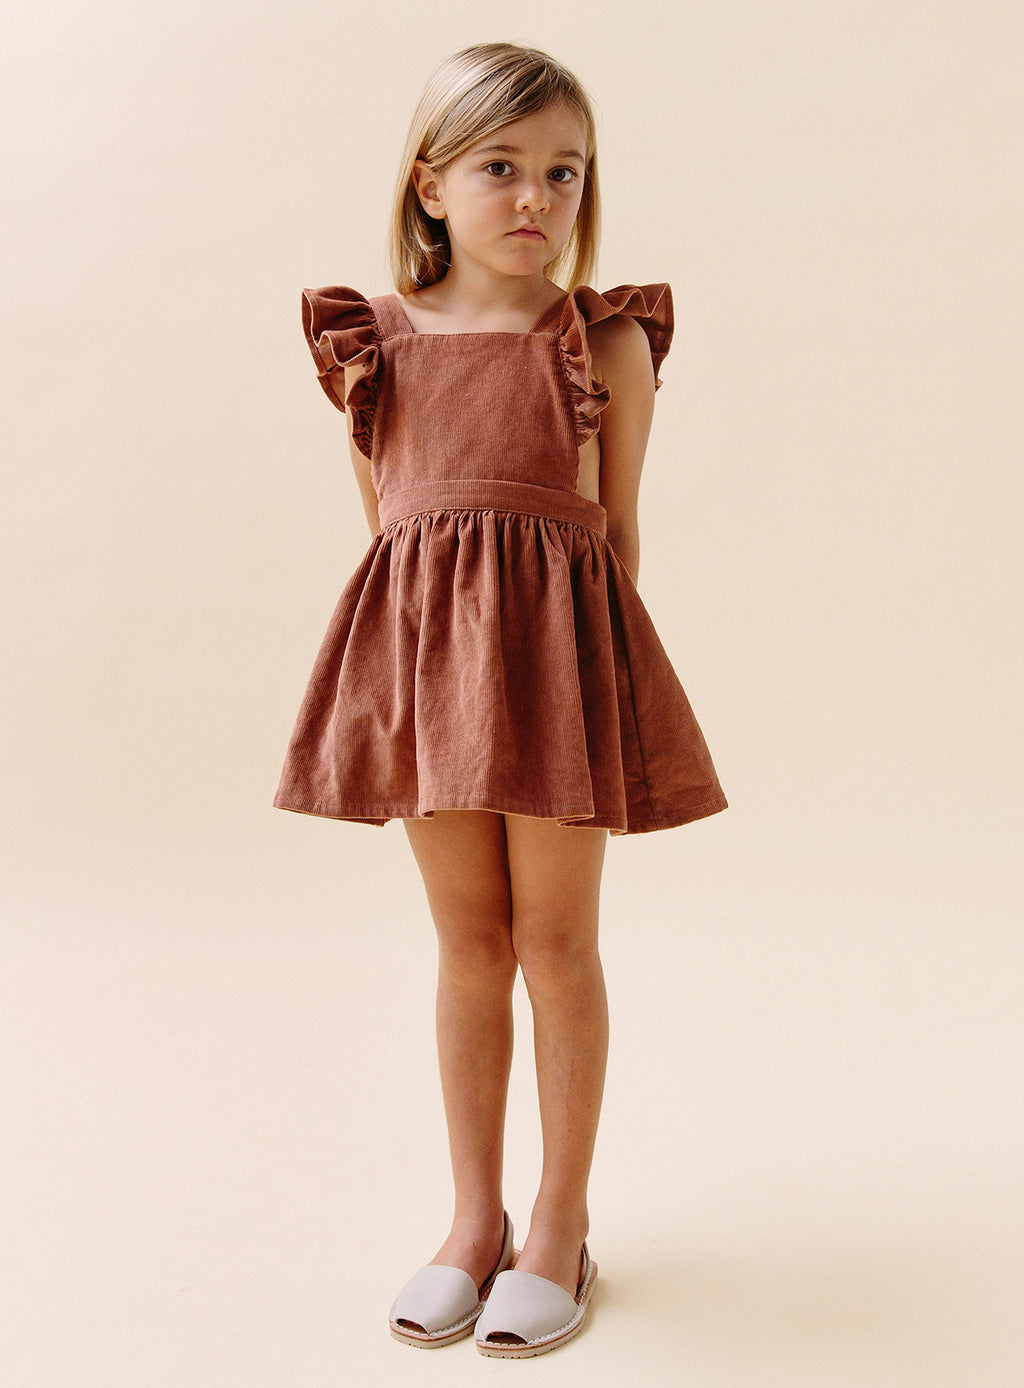 Dusk Pinafore - Rose Cord